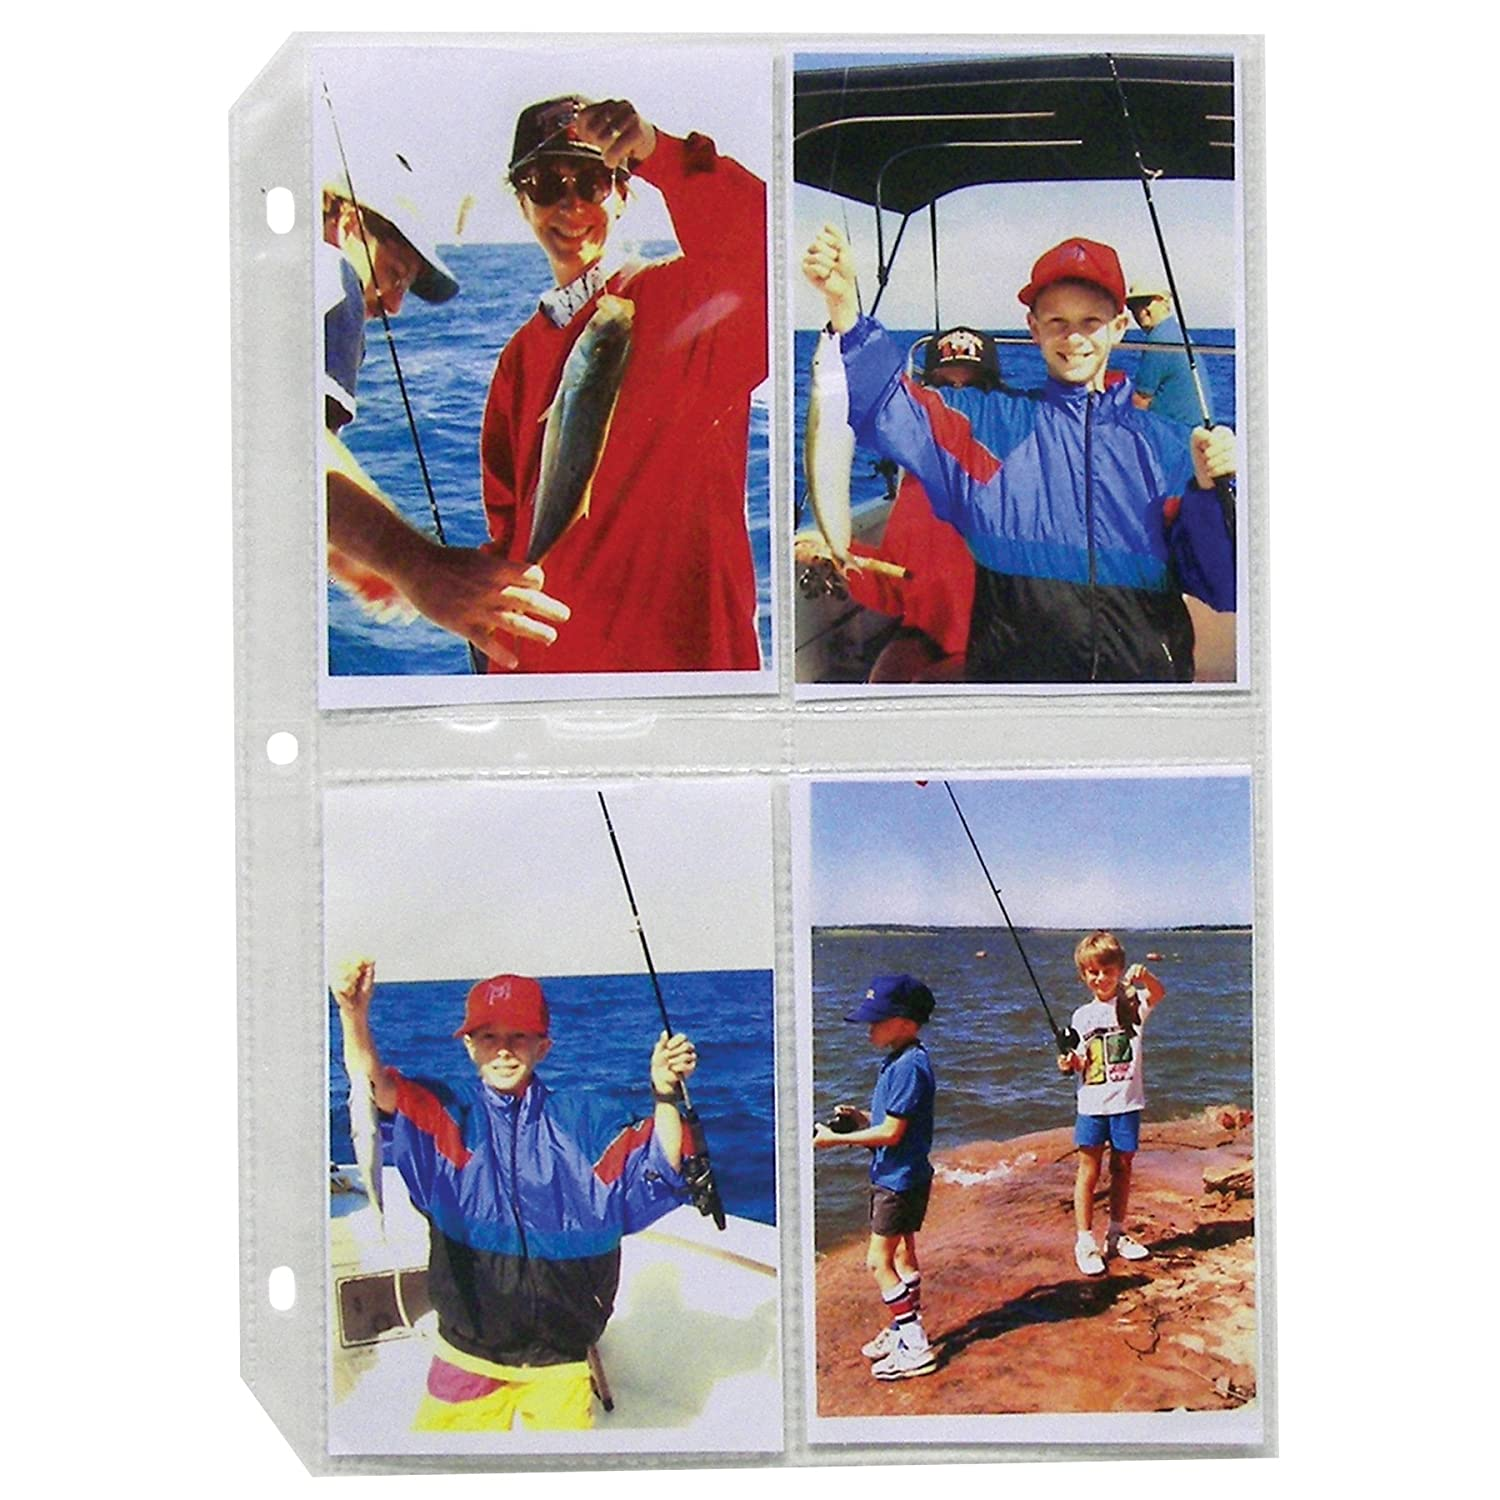 C-Line Ring Binder Photo Storage Pages for 4 x 6 Inch Photos, Multi-View, 6 Photos/Page, 50 Pages per Box (41346) C-Line Products Inc.